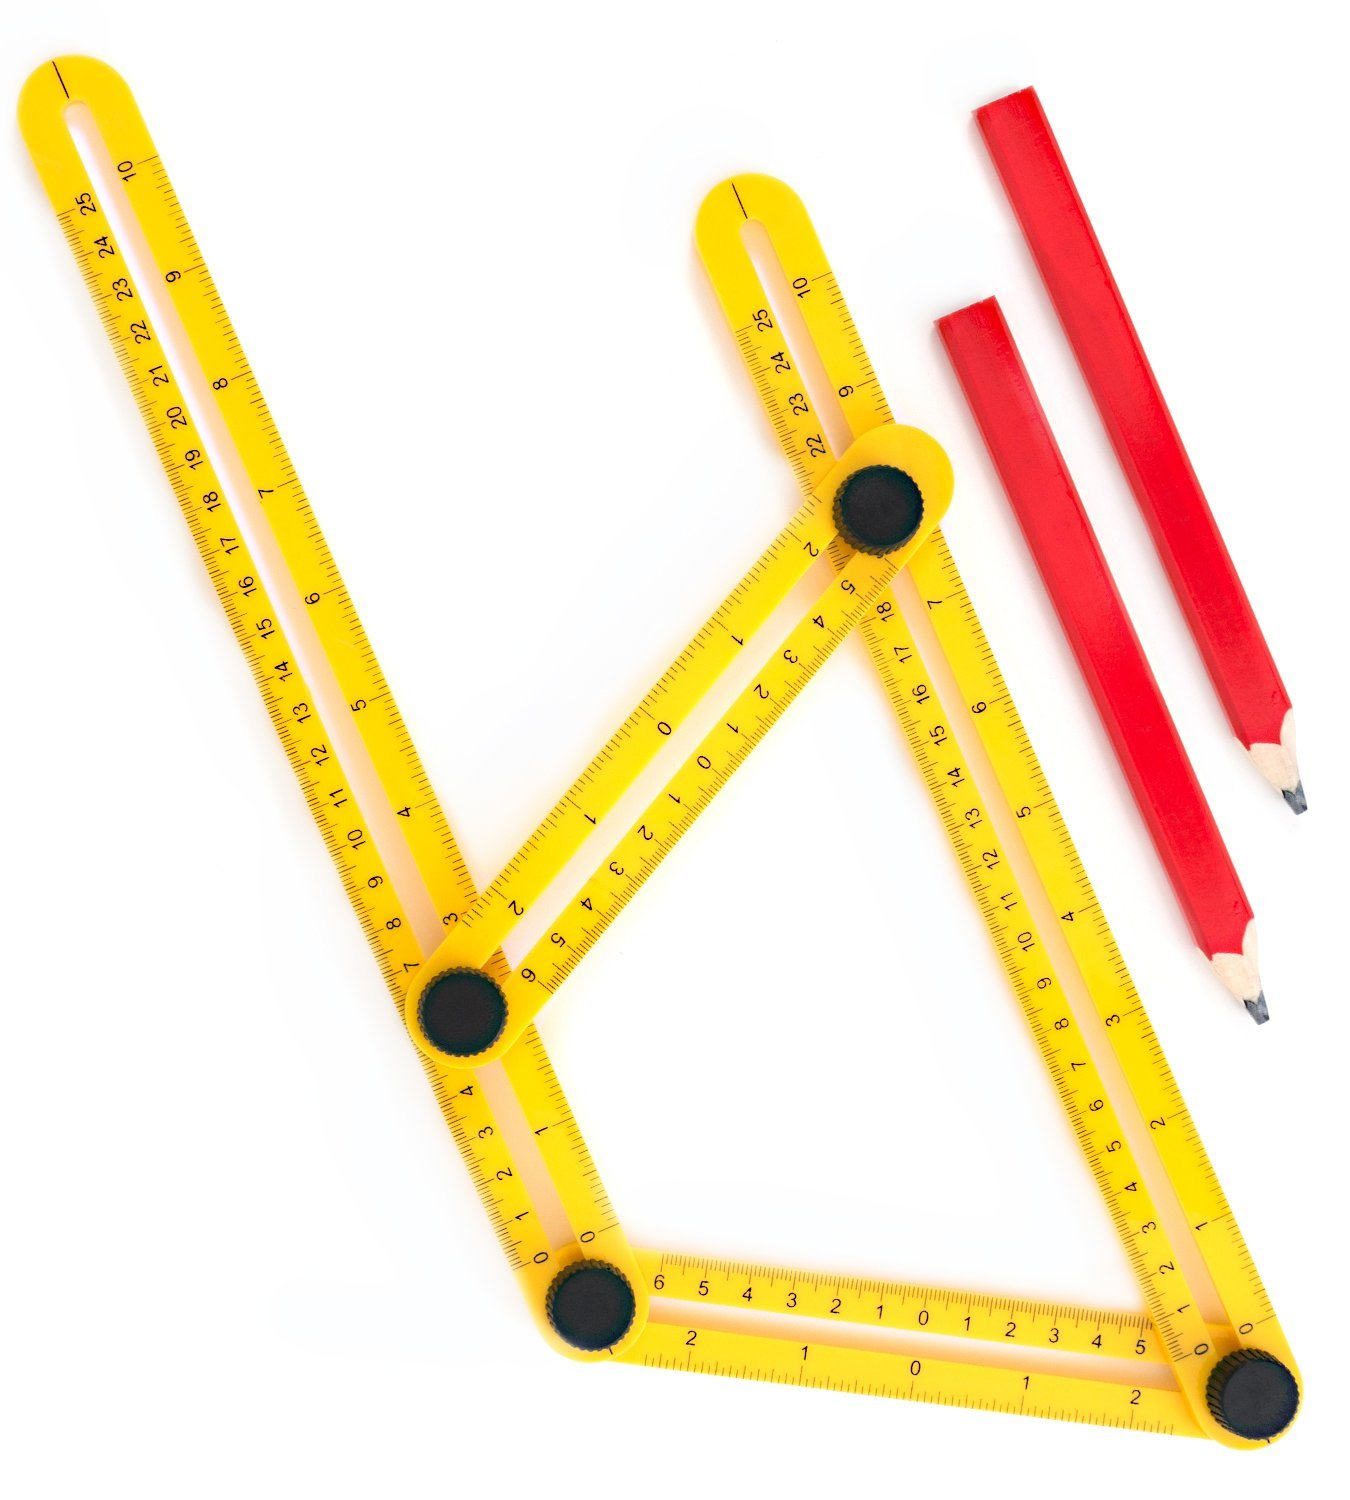 Angle Finder For Contractors, Handymen & DIY-ers | Multi-Angle Measuring Ruler | Maxform... by LIVEDITOR LIGHTING